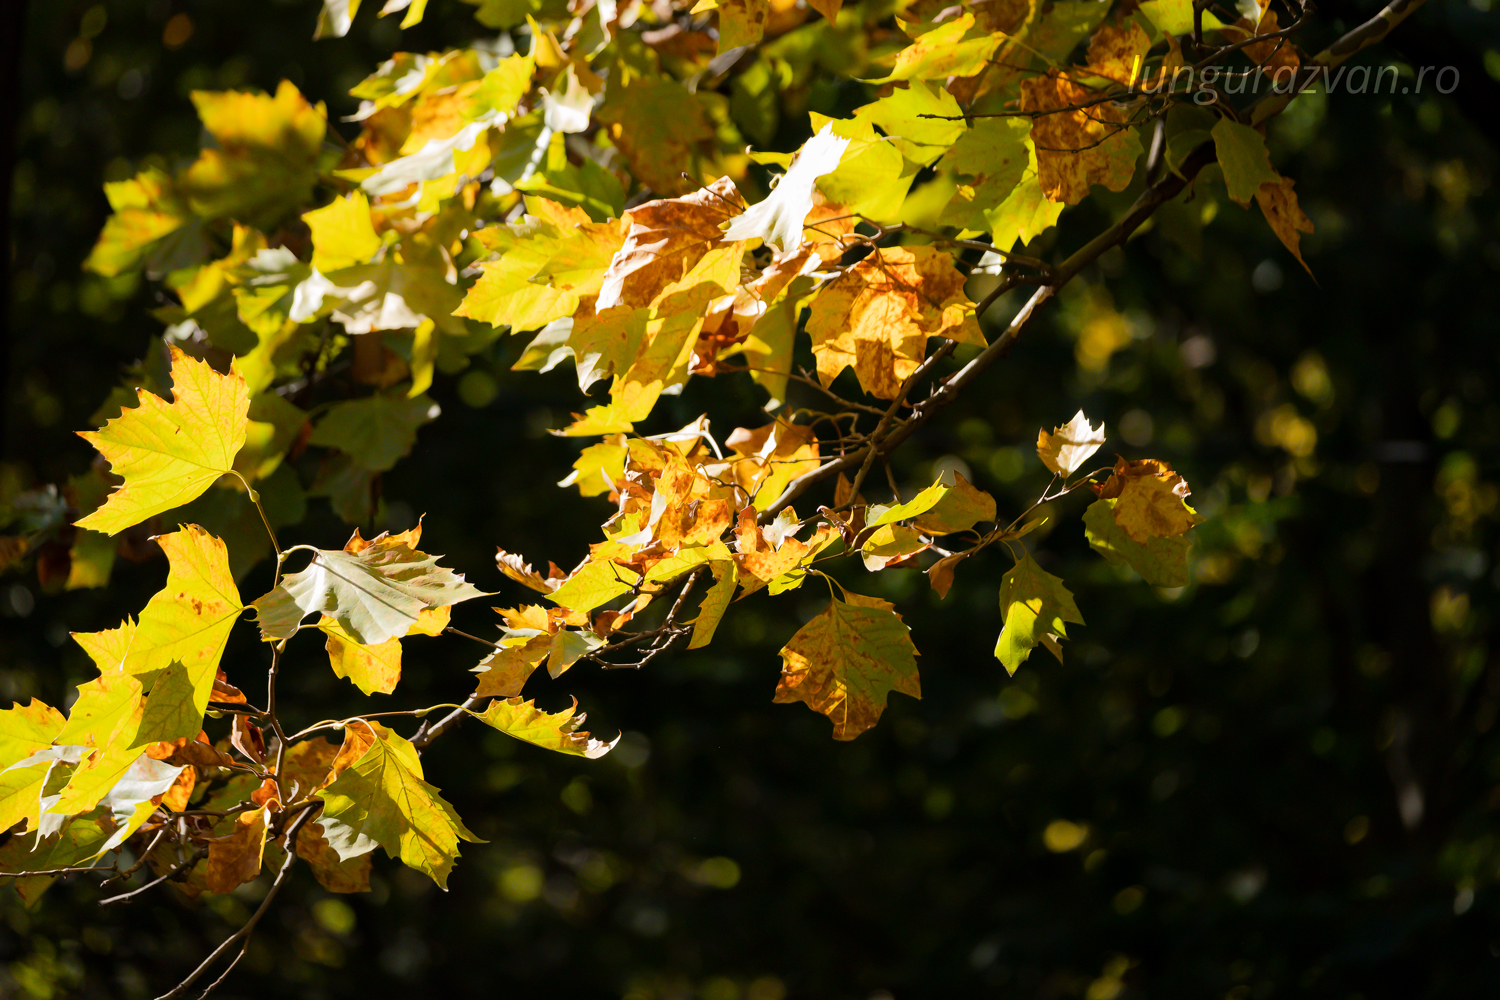 Dying Fauna: The Color Of Yellow. Yellow and brown leaves denoting dying fauna in the autmn season.